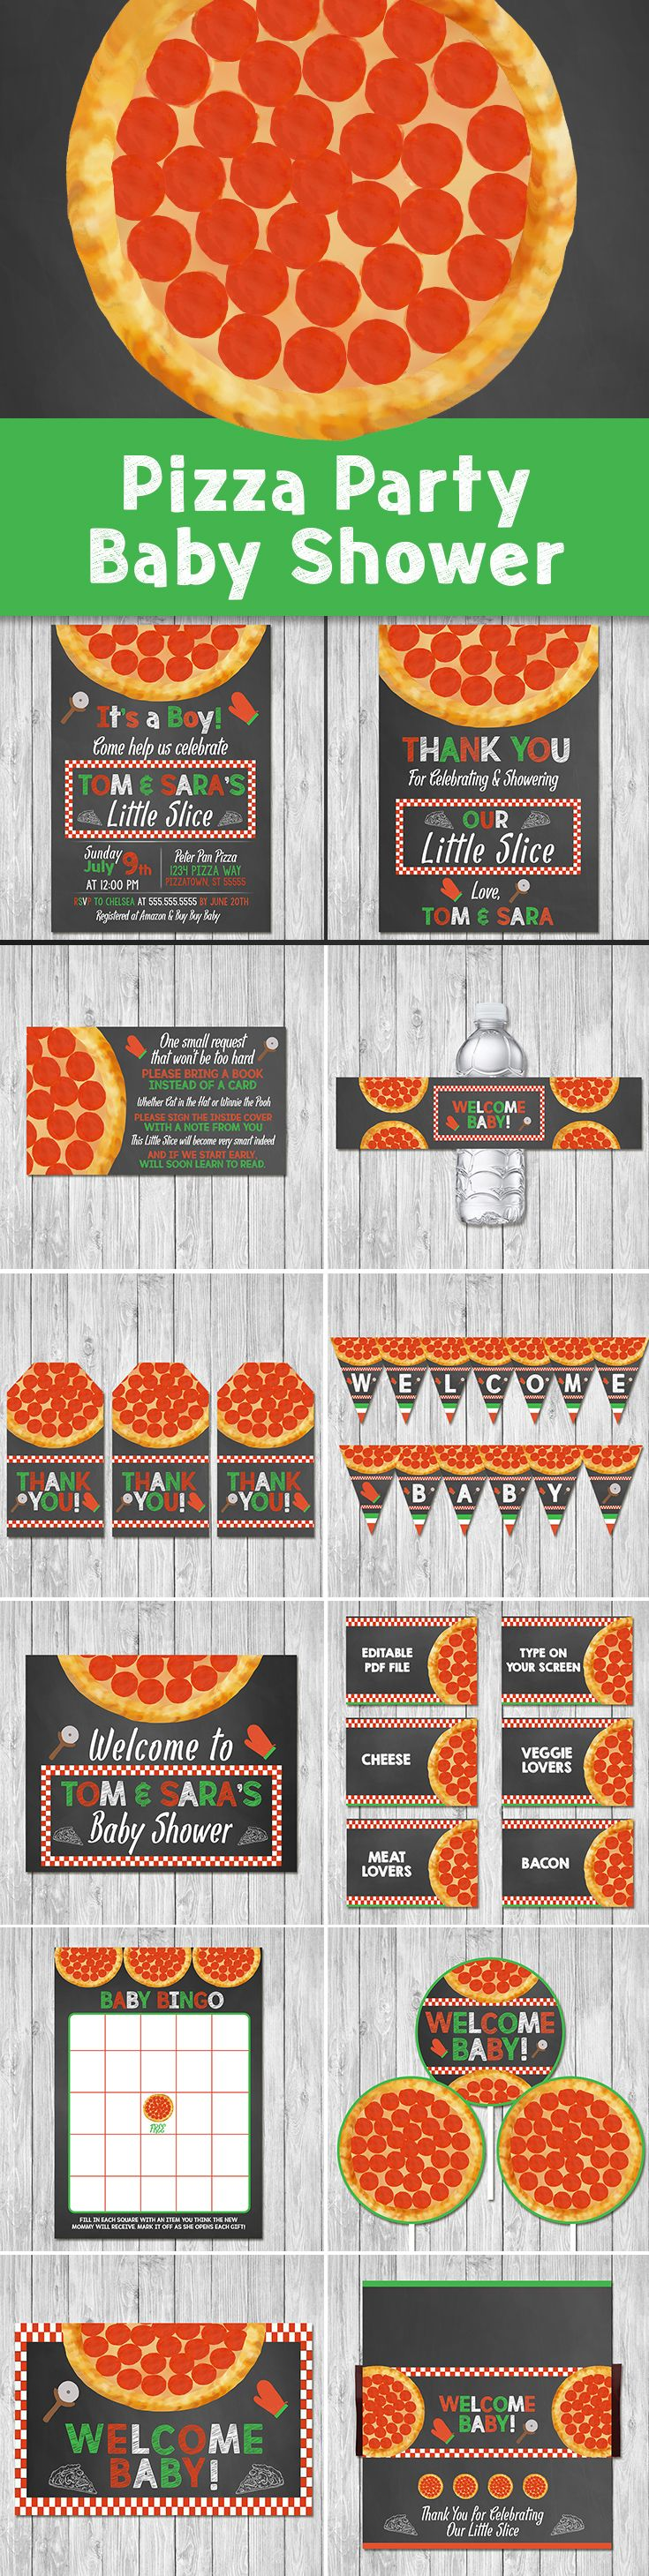 Pizza Baby Shower - Couples Baby Shower - Party Printables